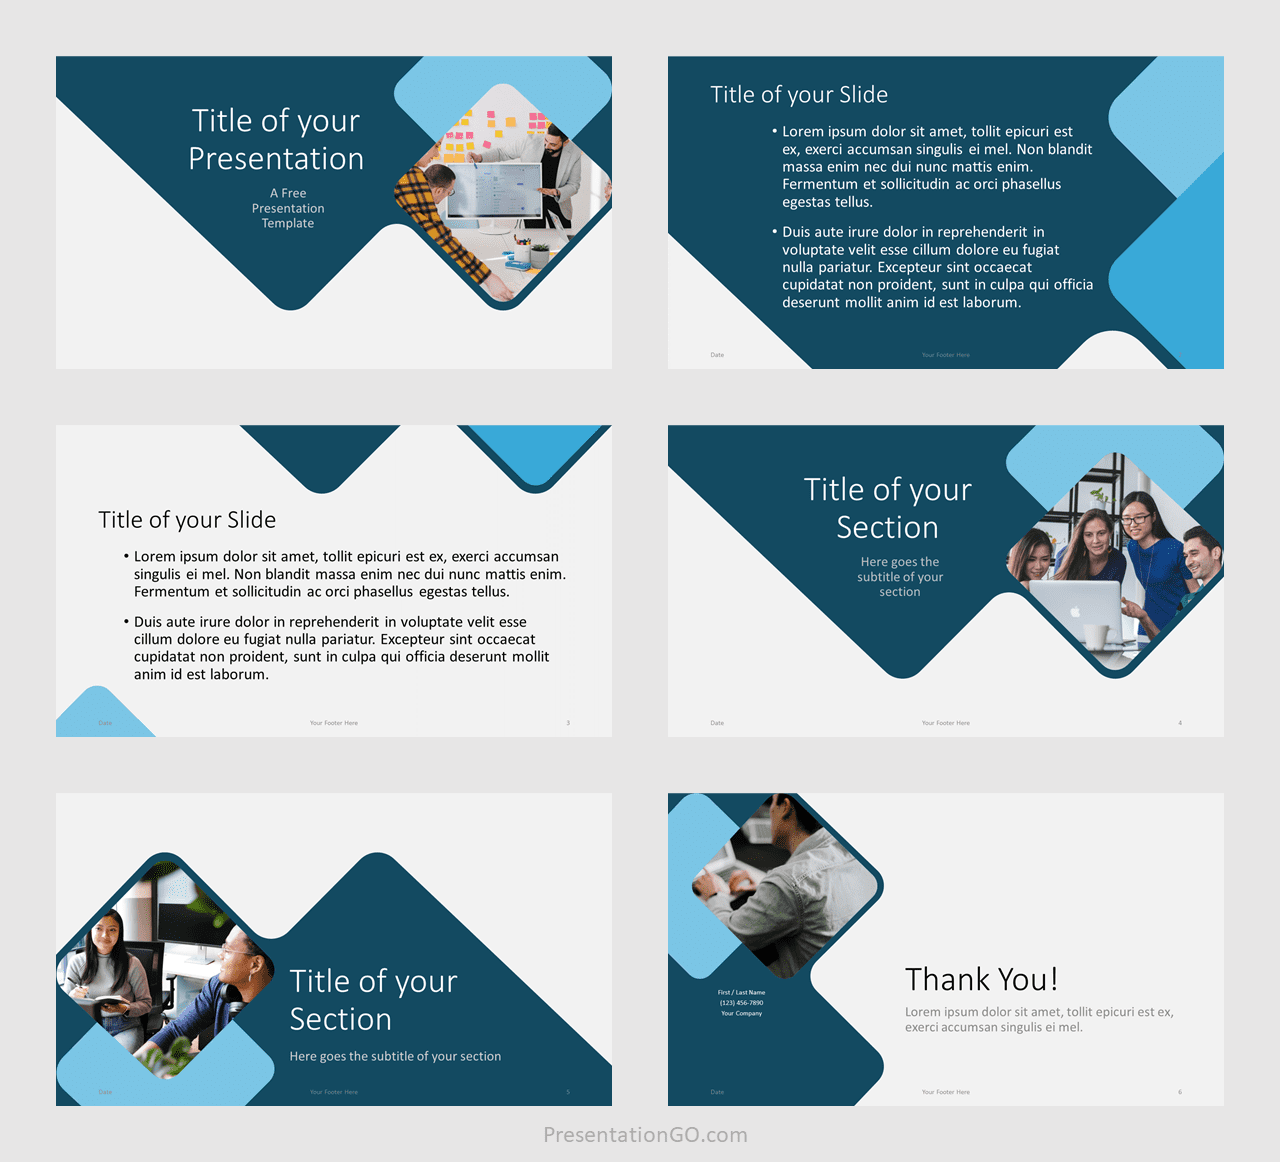 Free Abstract Rounded Template for PowerPoint and Google Slides - Example